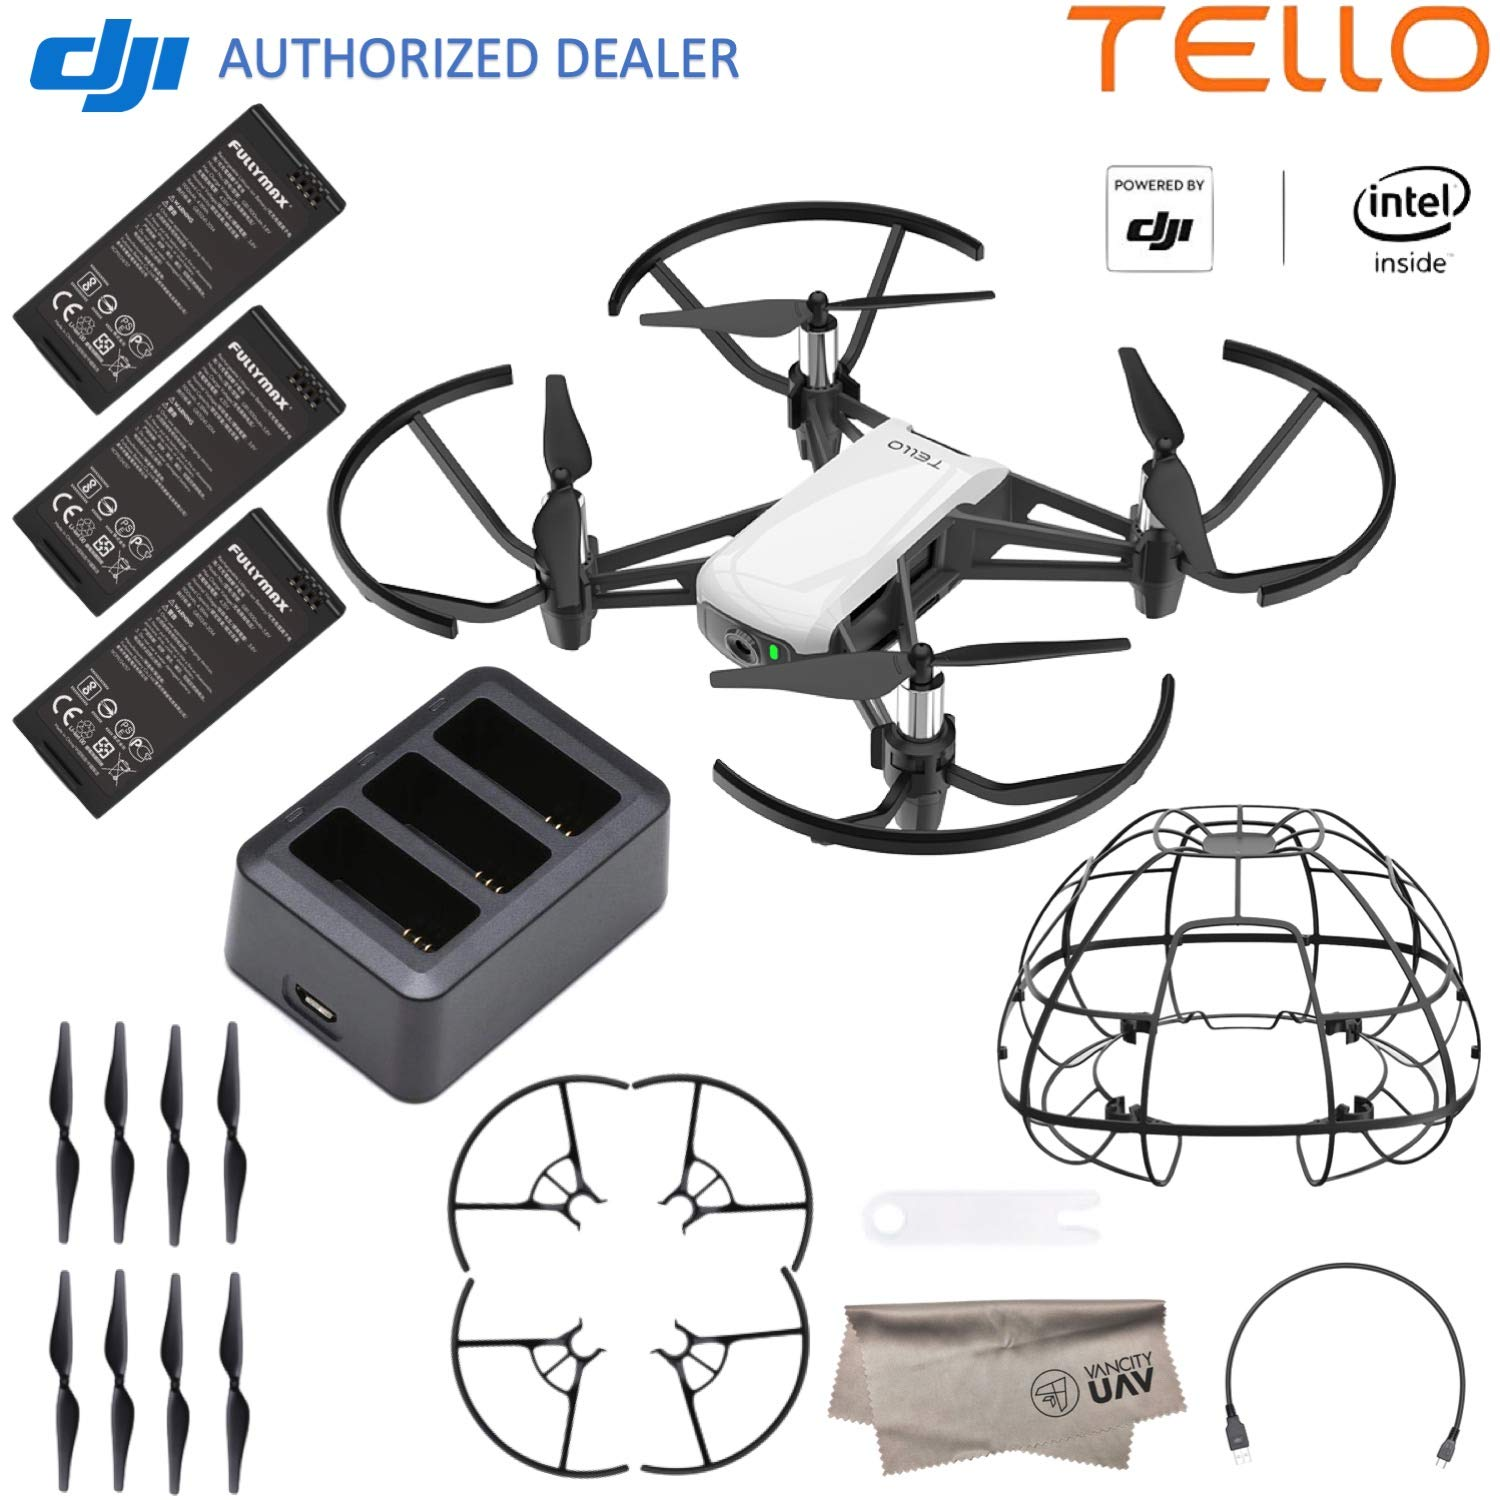 DJI Tello Quadcopter Drone Boost Combo with HD Camera and VR, Comes 3 Batteries, Protective Cage, 8 Propellers, Powered by DJI Technology and Intel 14-Core Processor, Coding Education, Throw and Go